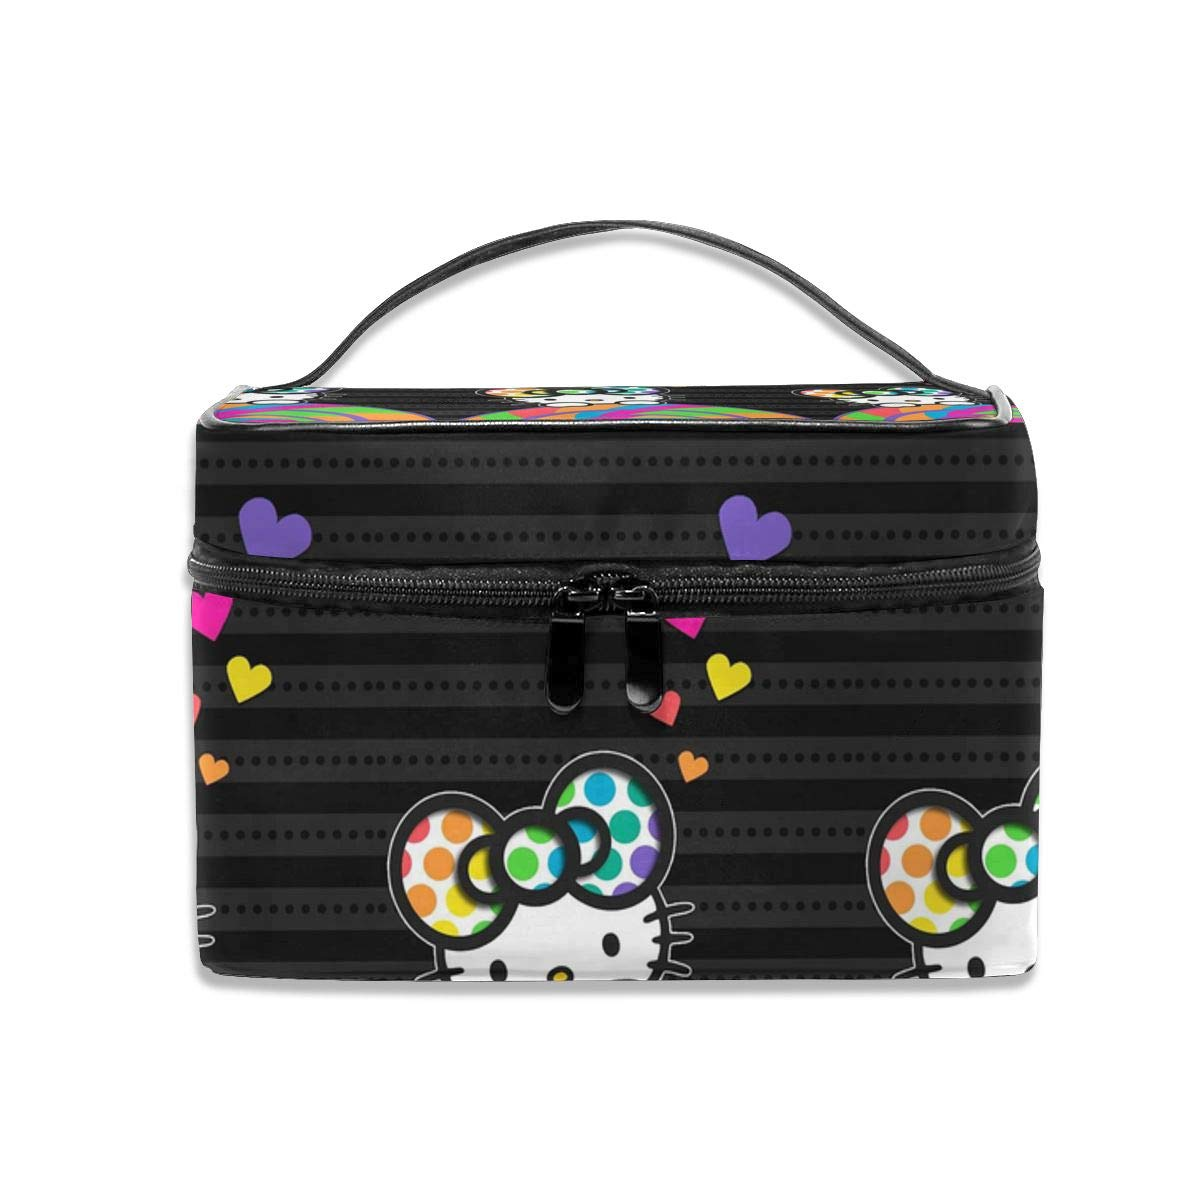 Cosmetic Bag Colorful Hello Kitty Portable Travel Makeup Bag Cosmetics Organizer Multifunction Toiletry Bags Storage Case